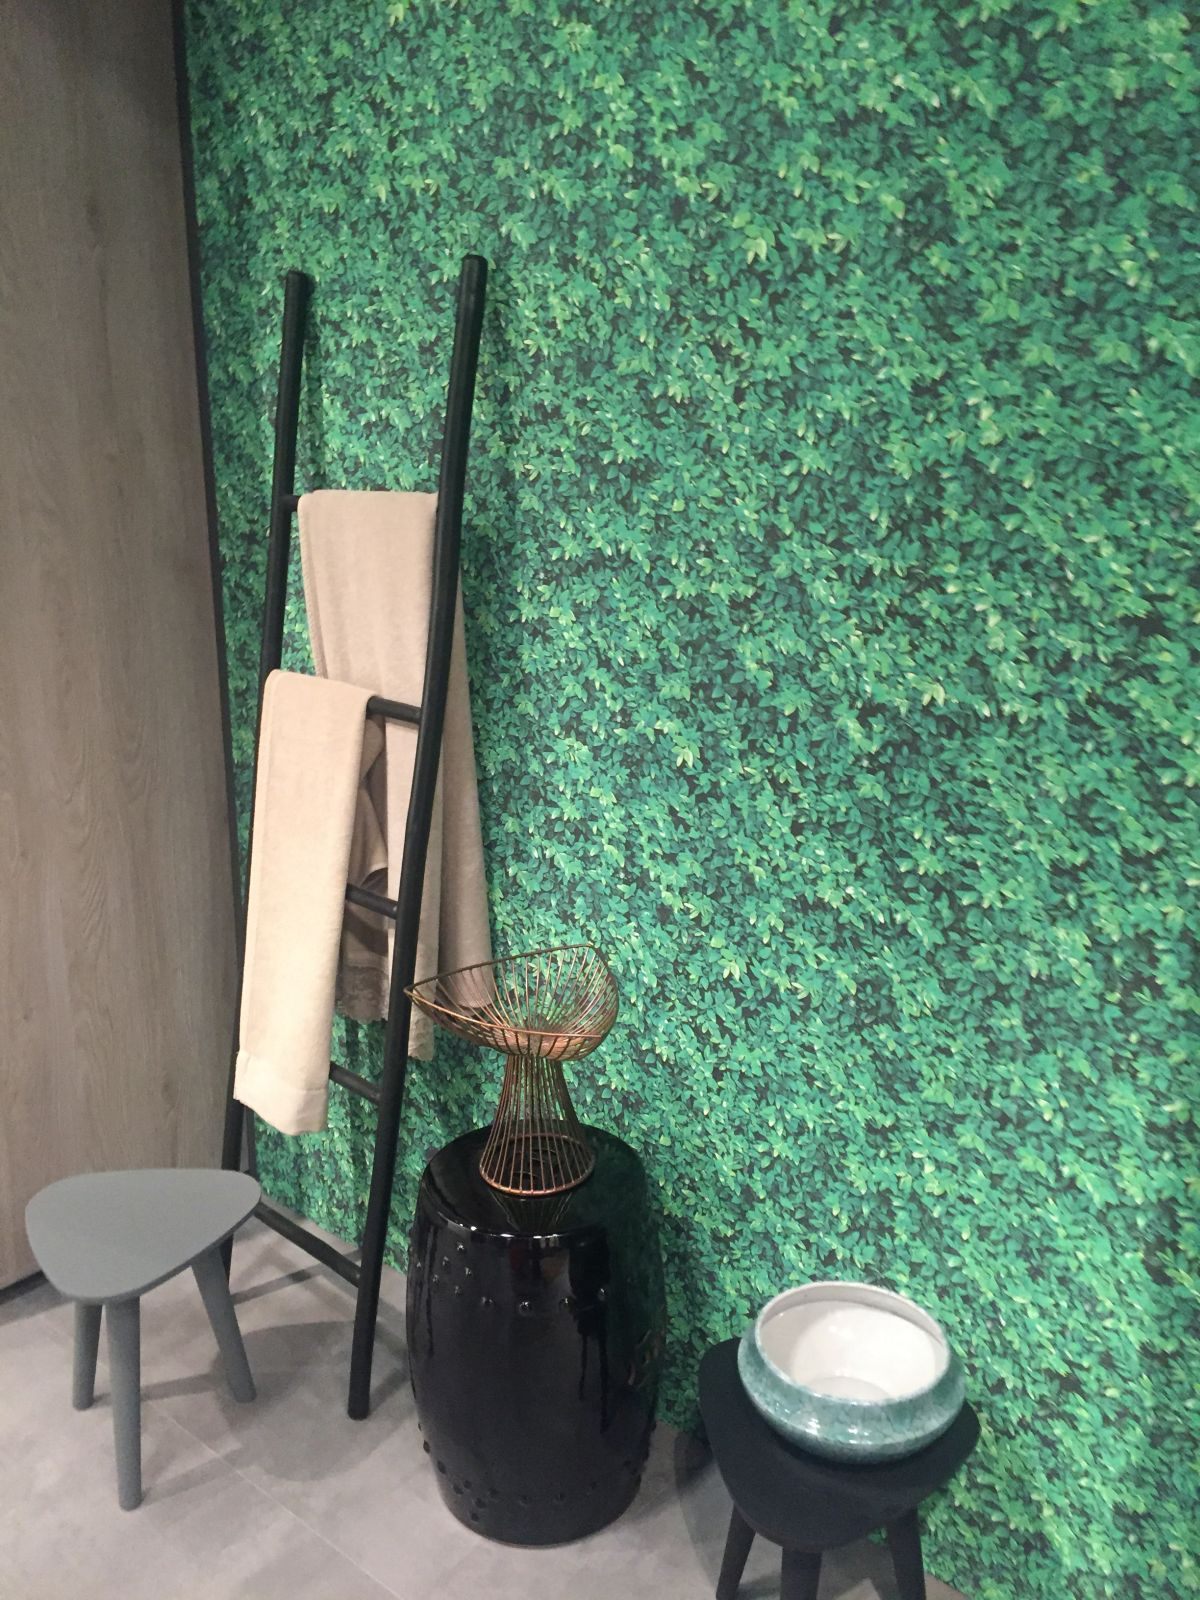 Green wallpaper for bathroom and ladder to towels